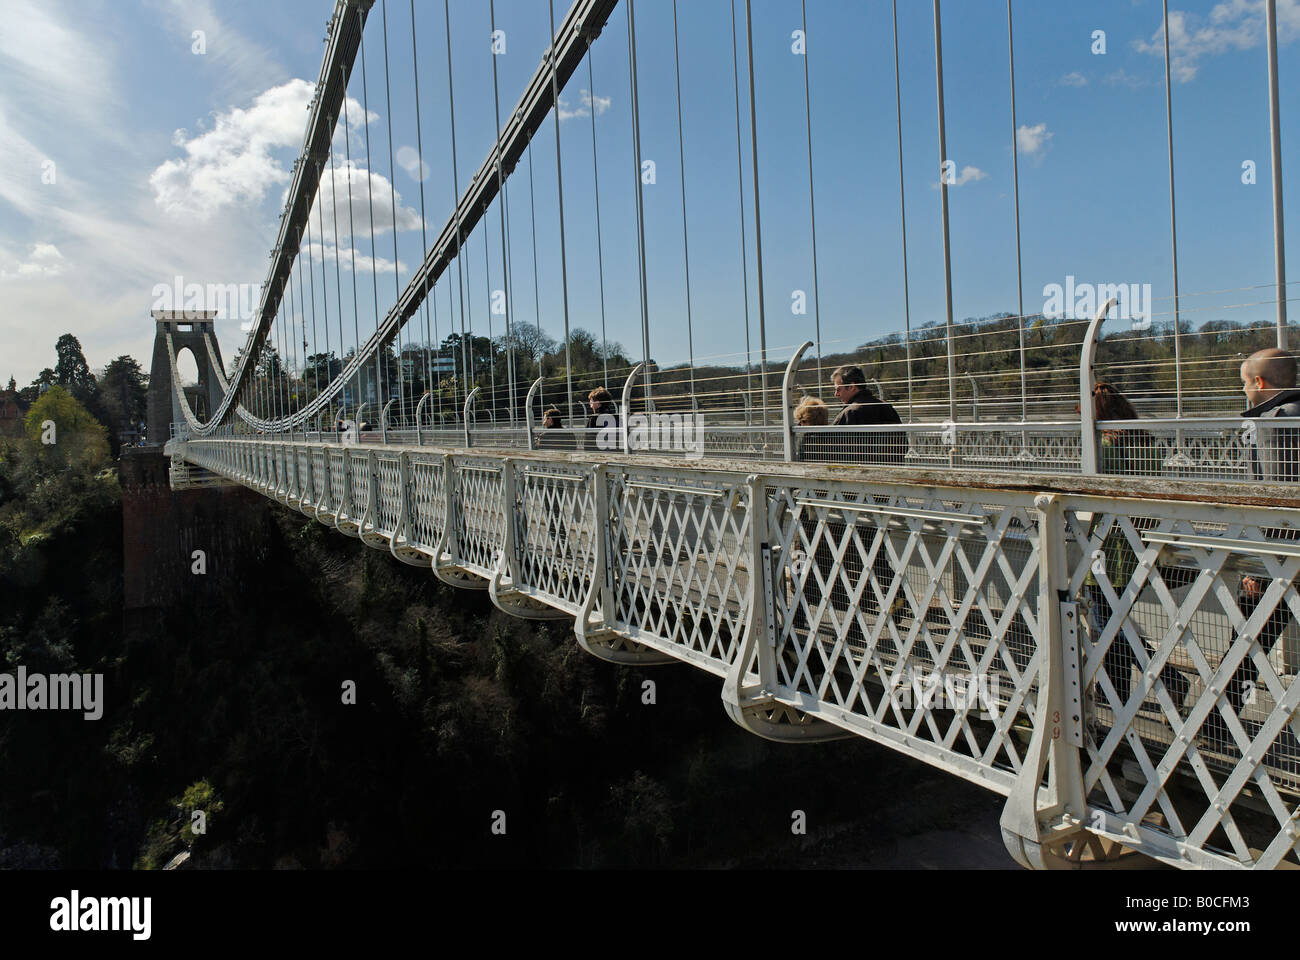 People crossing the Clifton Suspension Bridge on foot - Stock Image